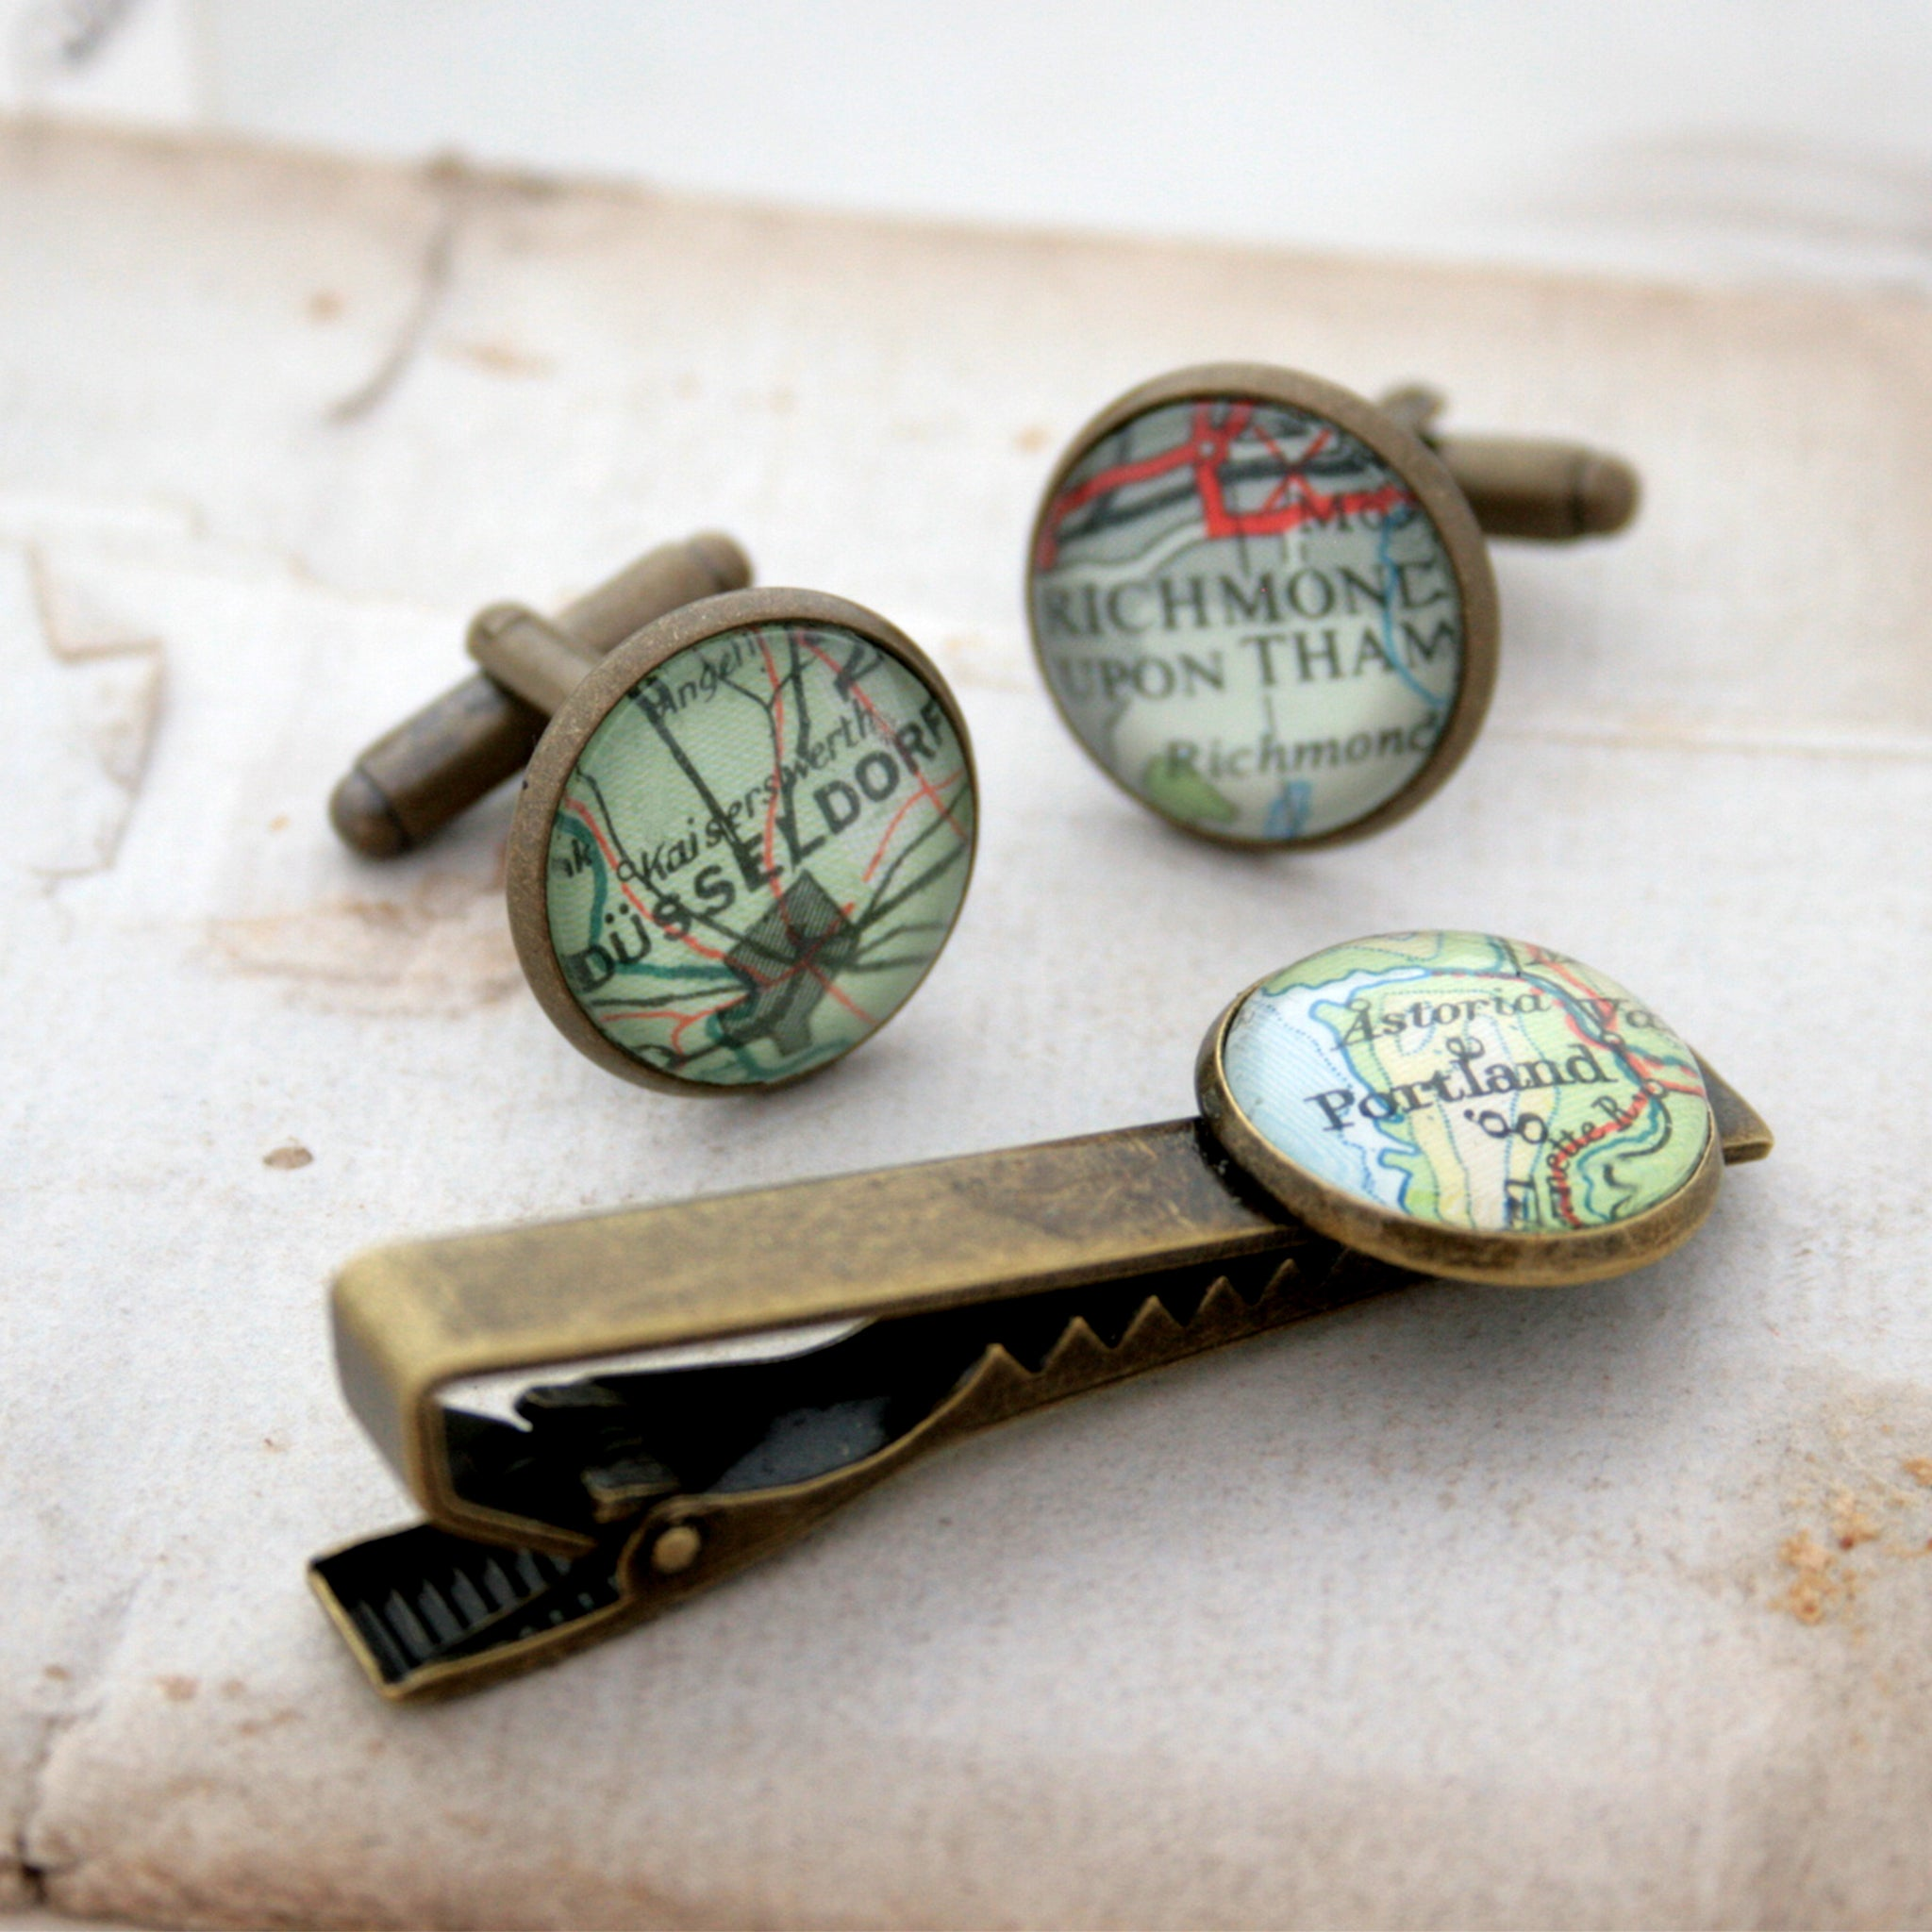 Tie clip and cufflinks in bronze color featuring selection of map locations